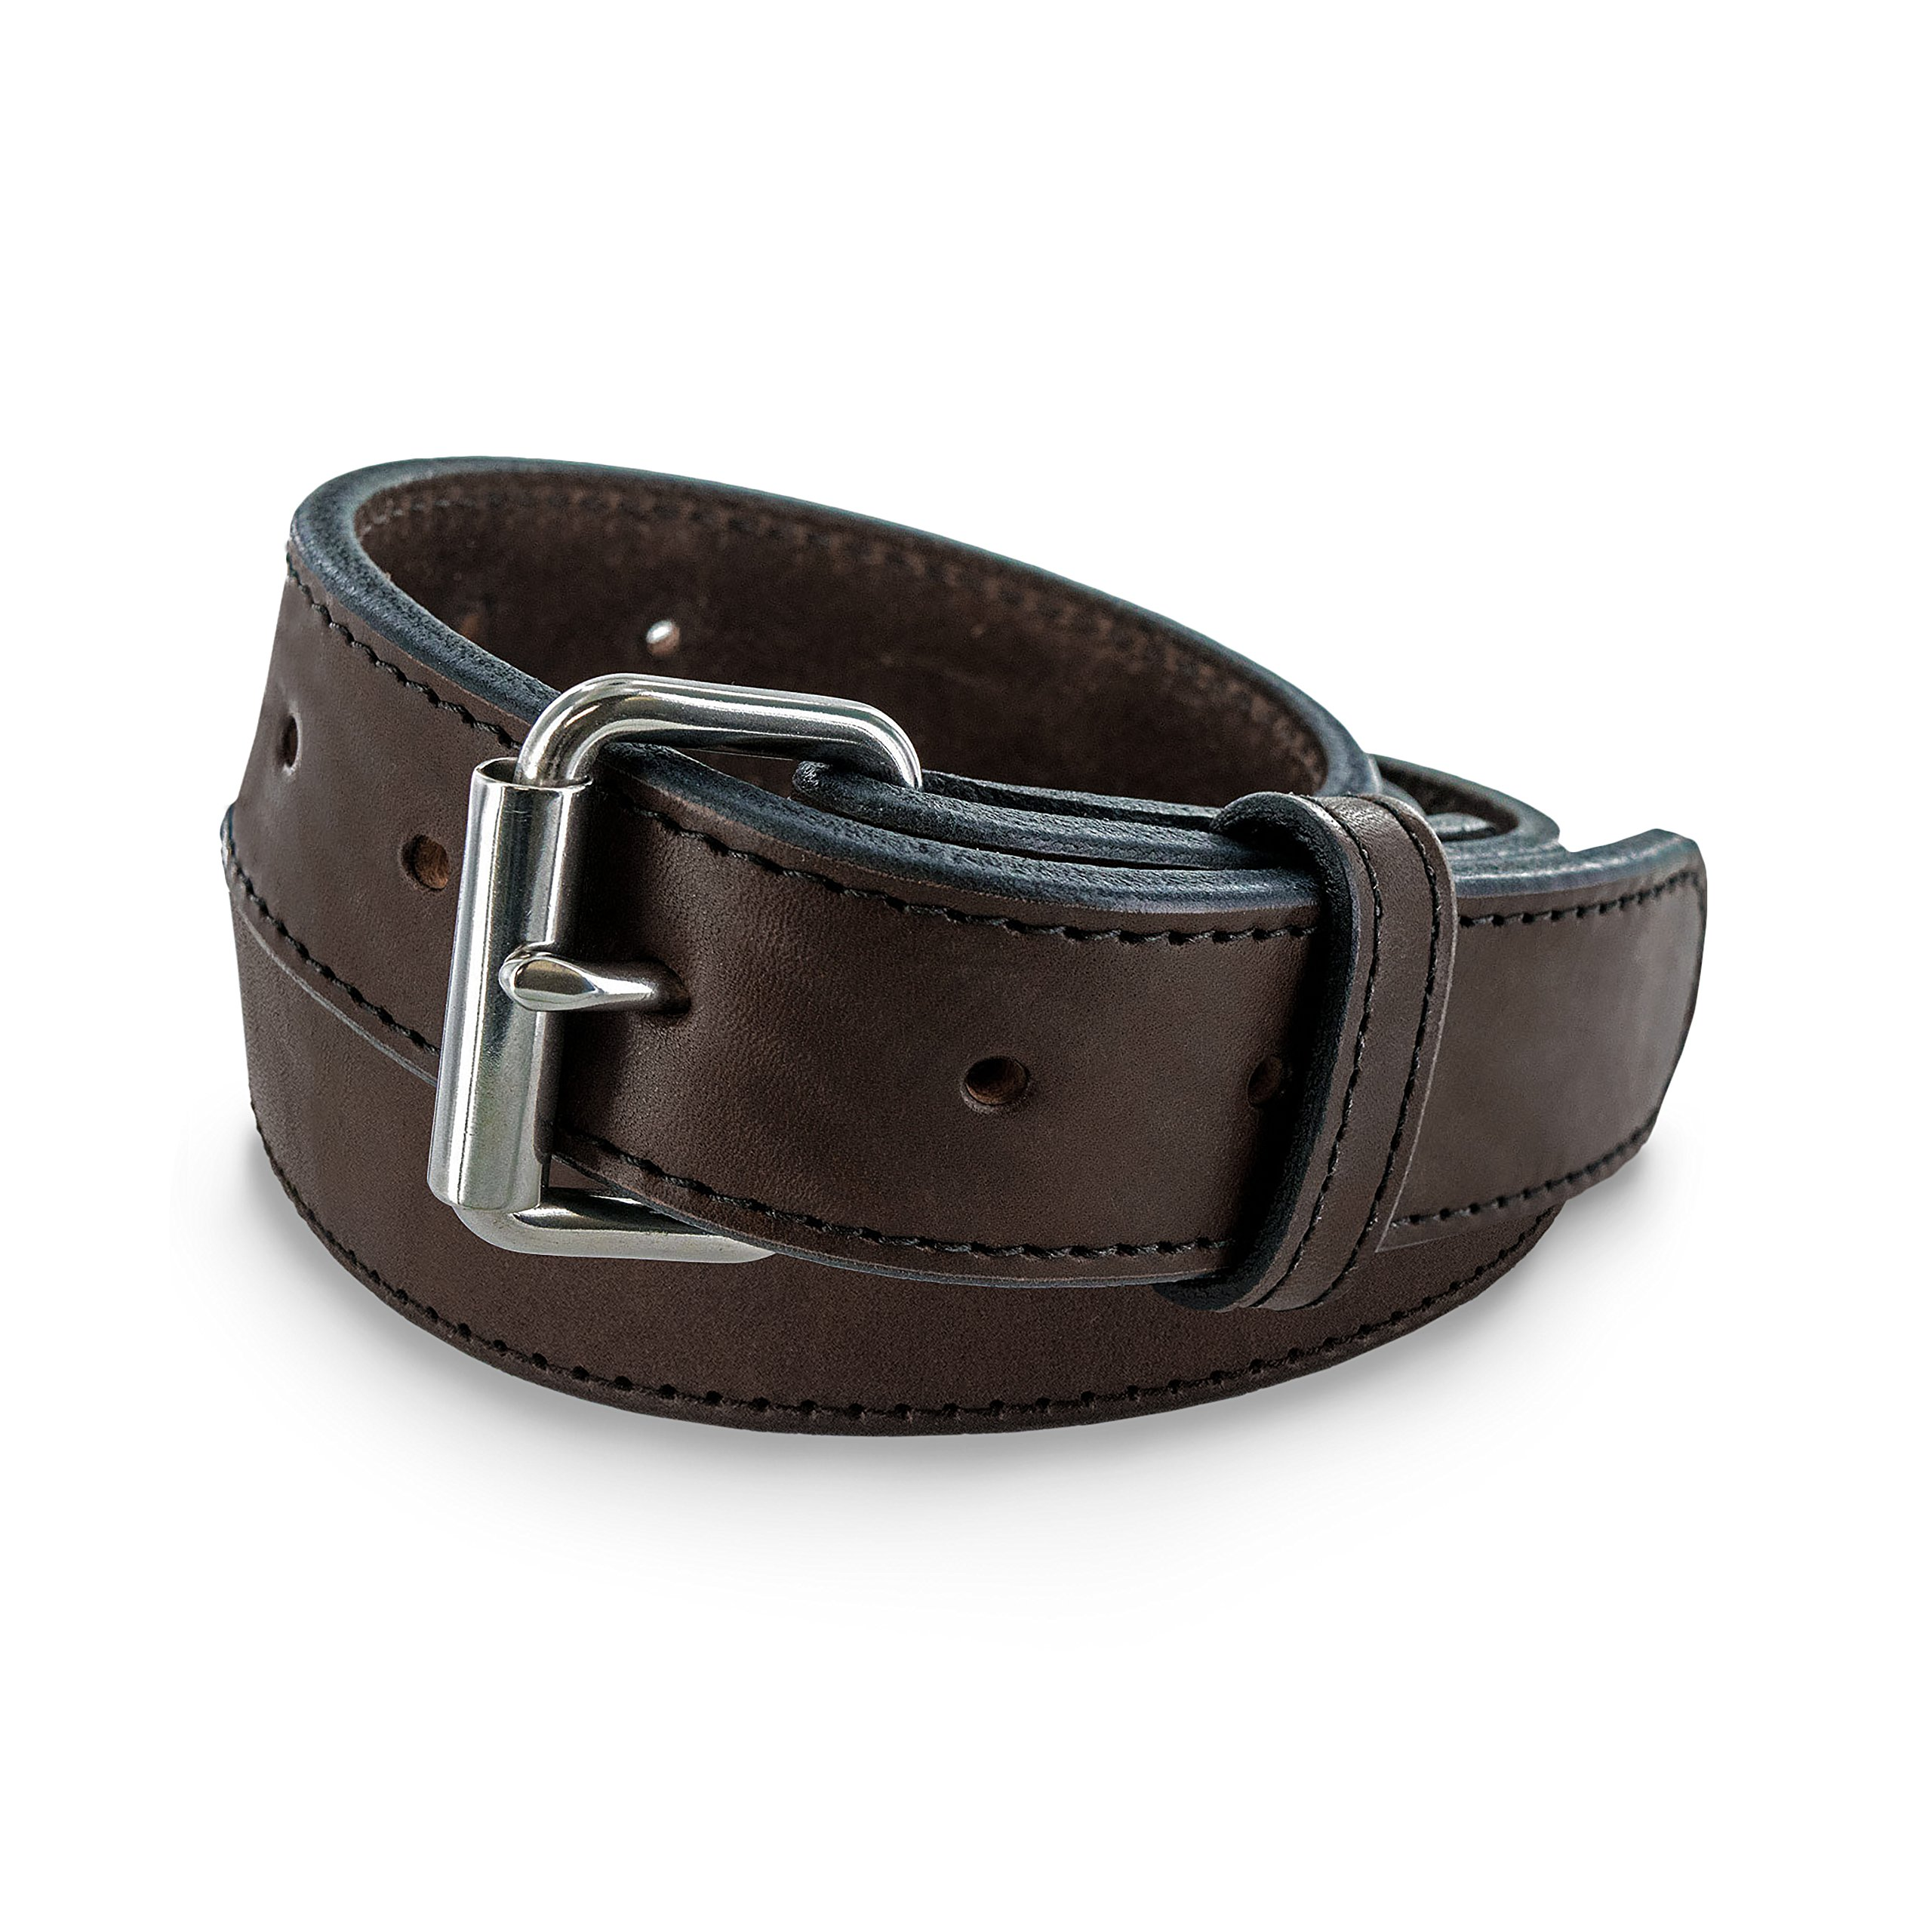 Hanks Extreme - Leather Gun Belt for CCW - Concealed Carry - 17oz. Premium Leather Belt - Made in USA - 100-Year Warranty - Brown - Size 38 by Hanks Belts